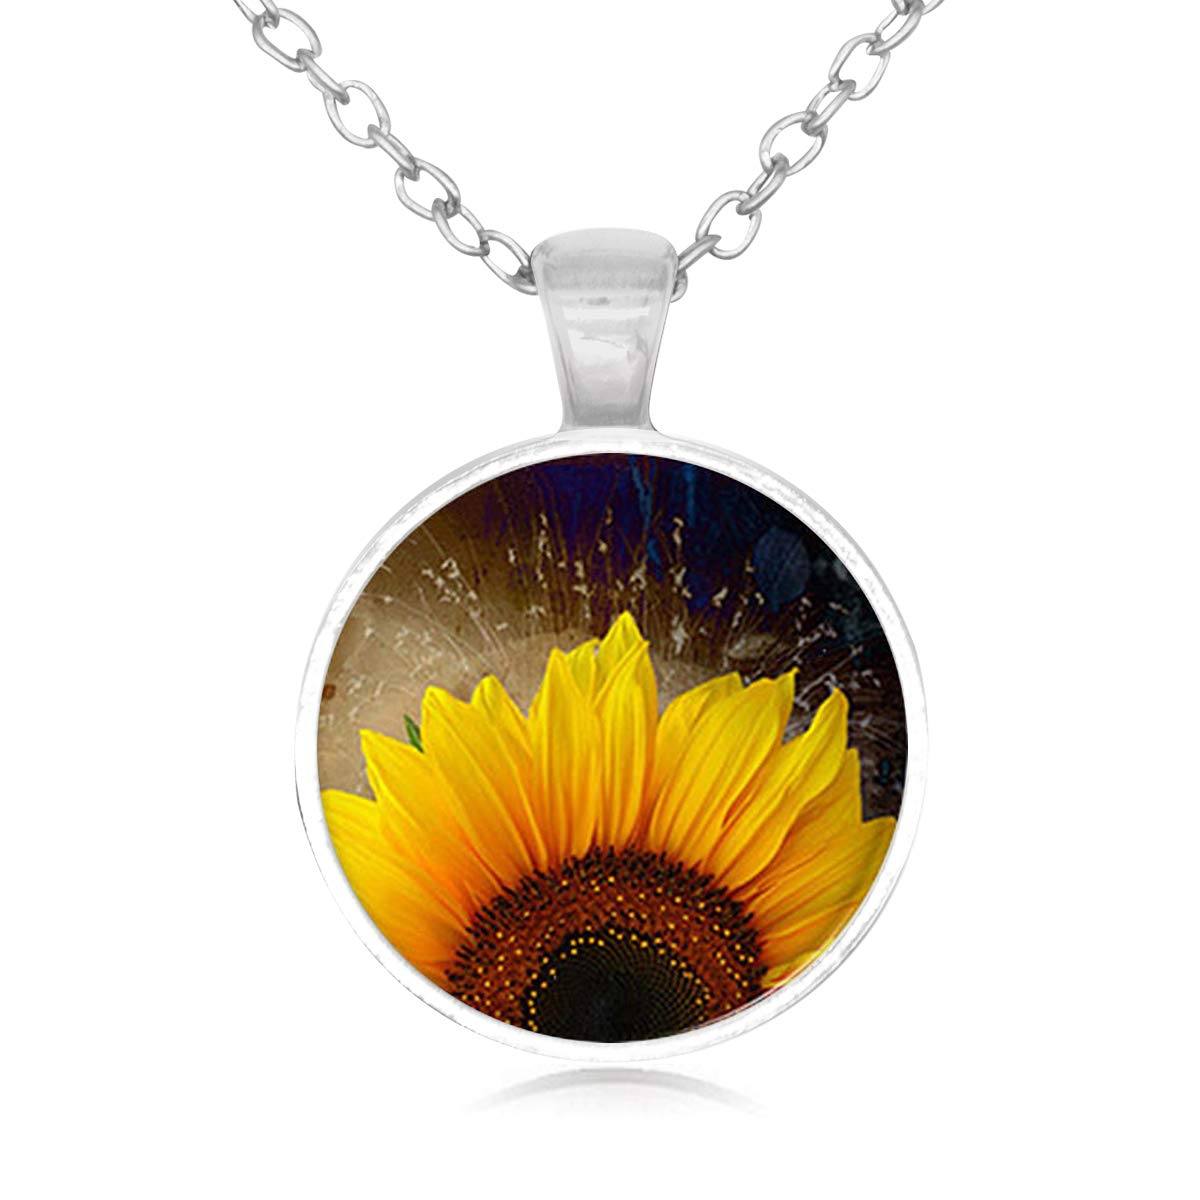 Family Decor Sunflower Pendant Necklace Cabochon Glass Vintage Bronze Chain Necklace Jewelry Handmade